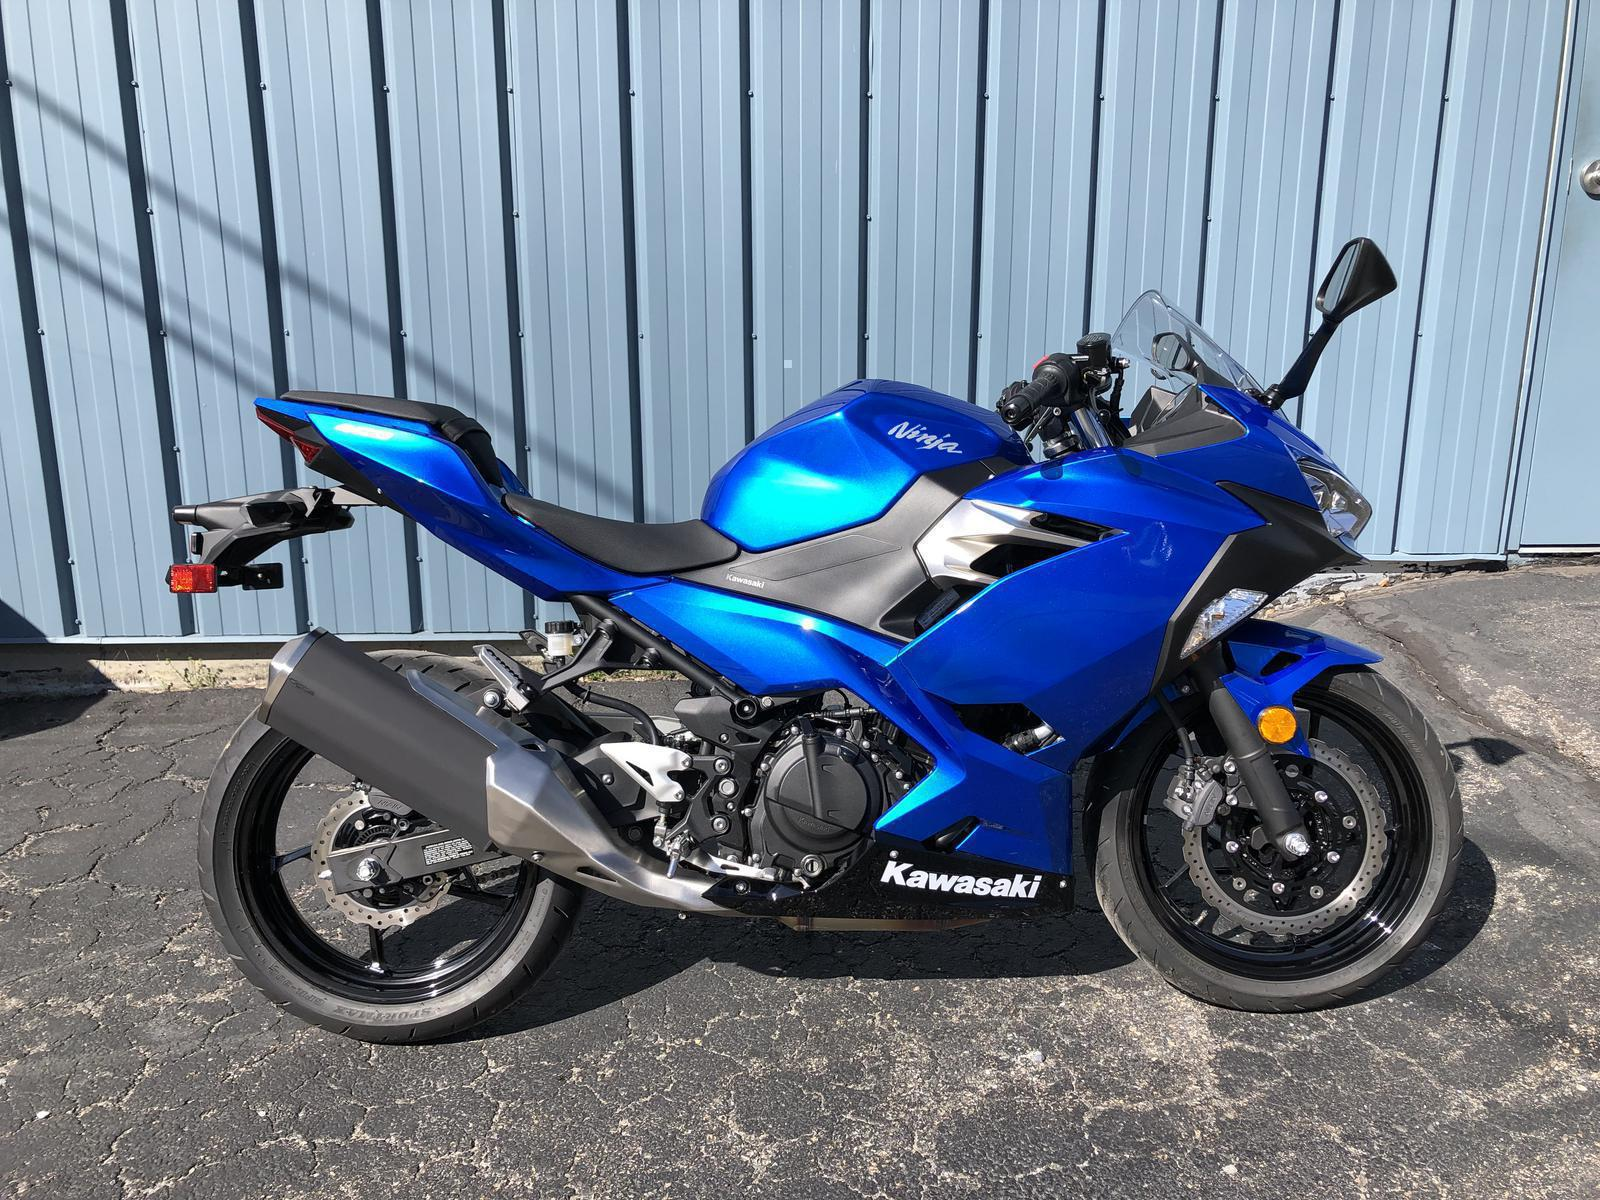 Inventory from Kawasaki Roadside Motorsports Williston, VT (802) 863